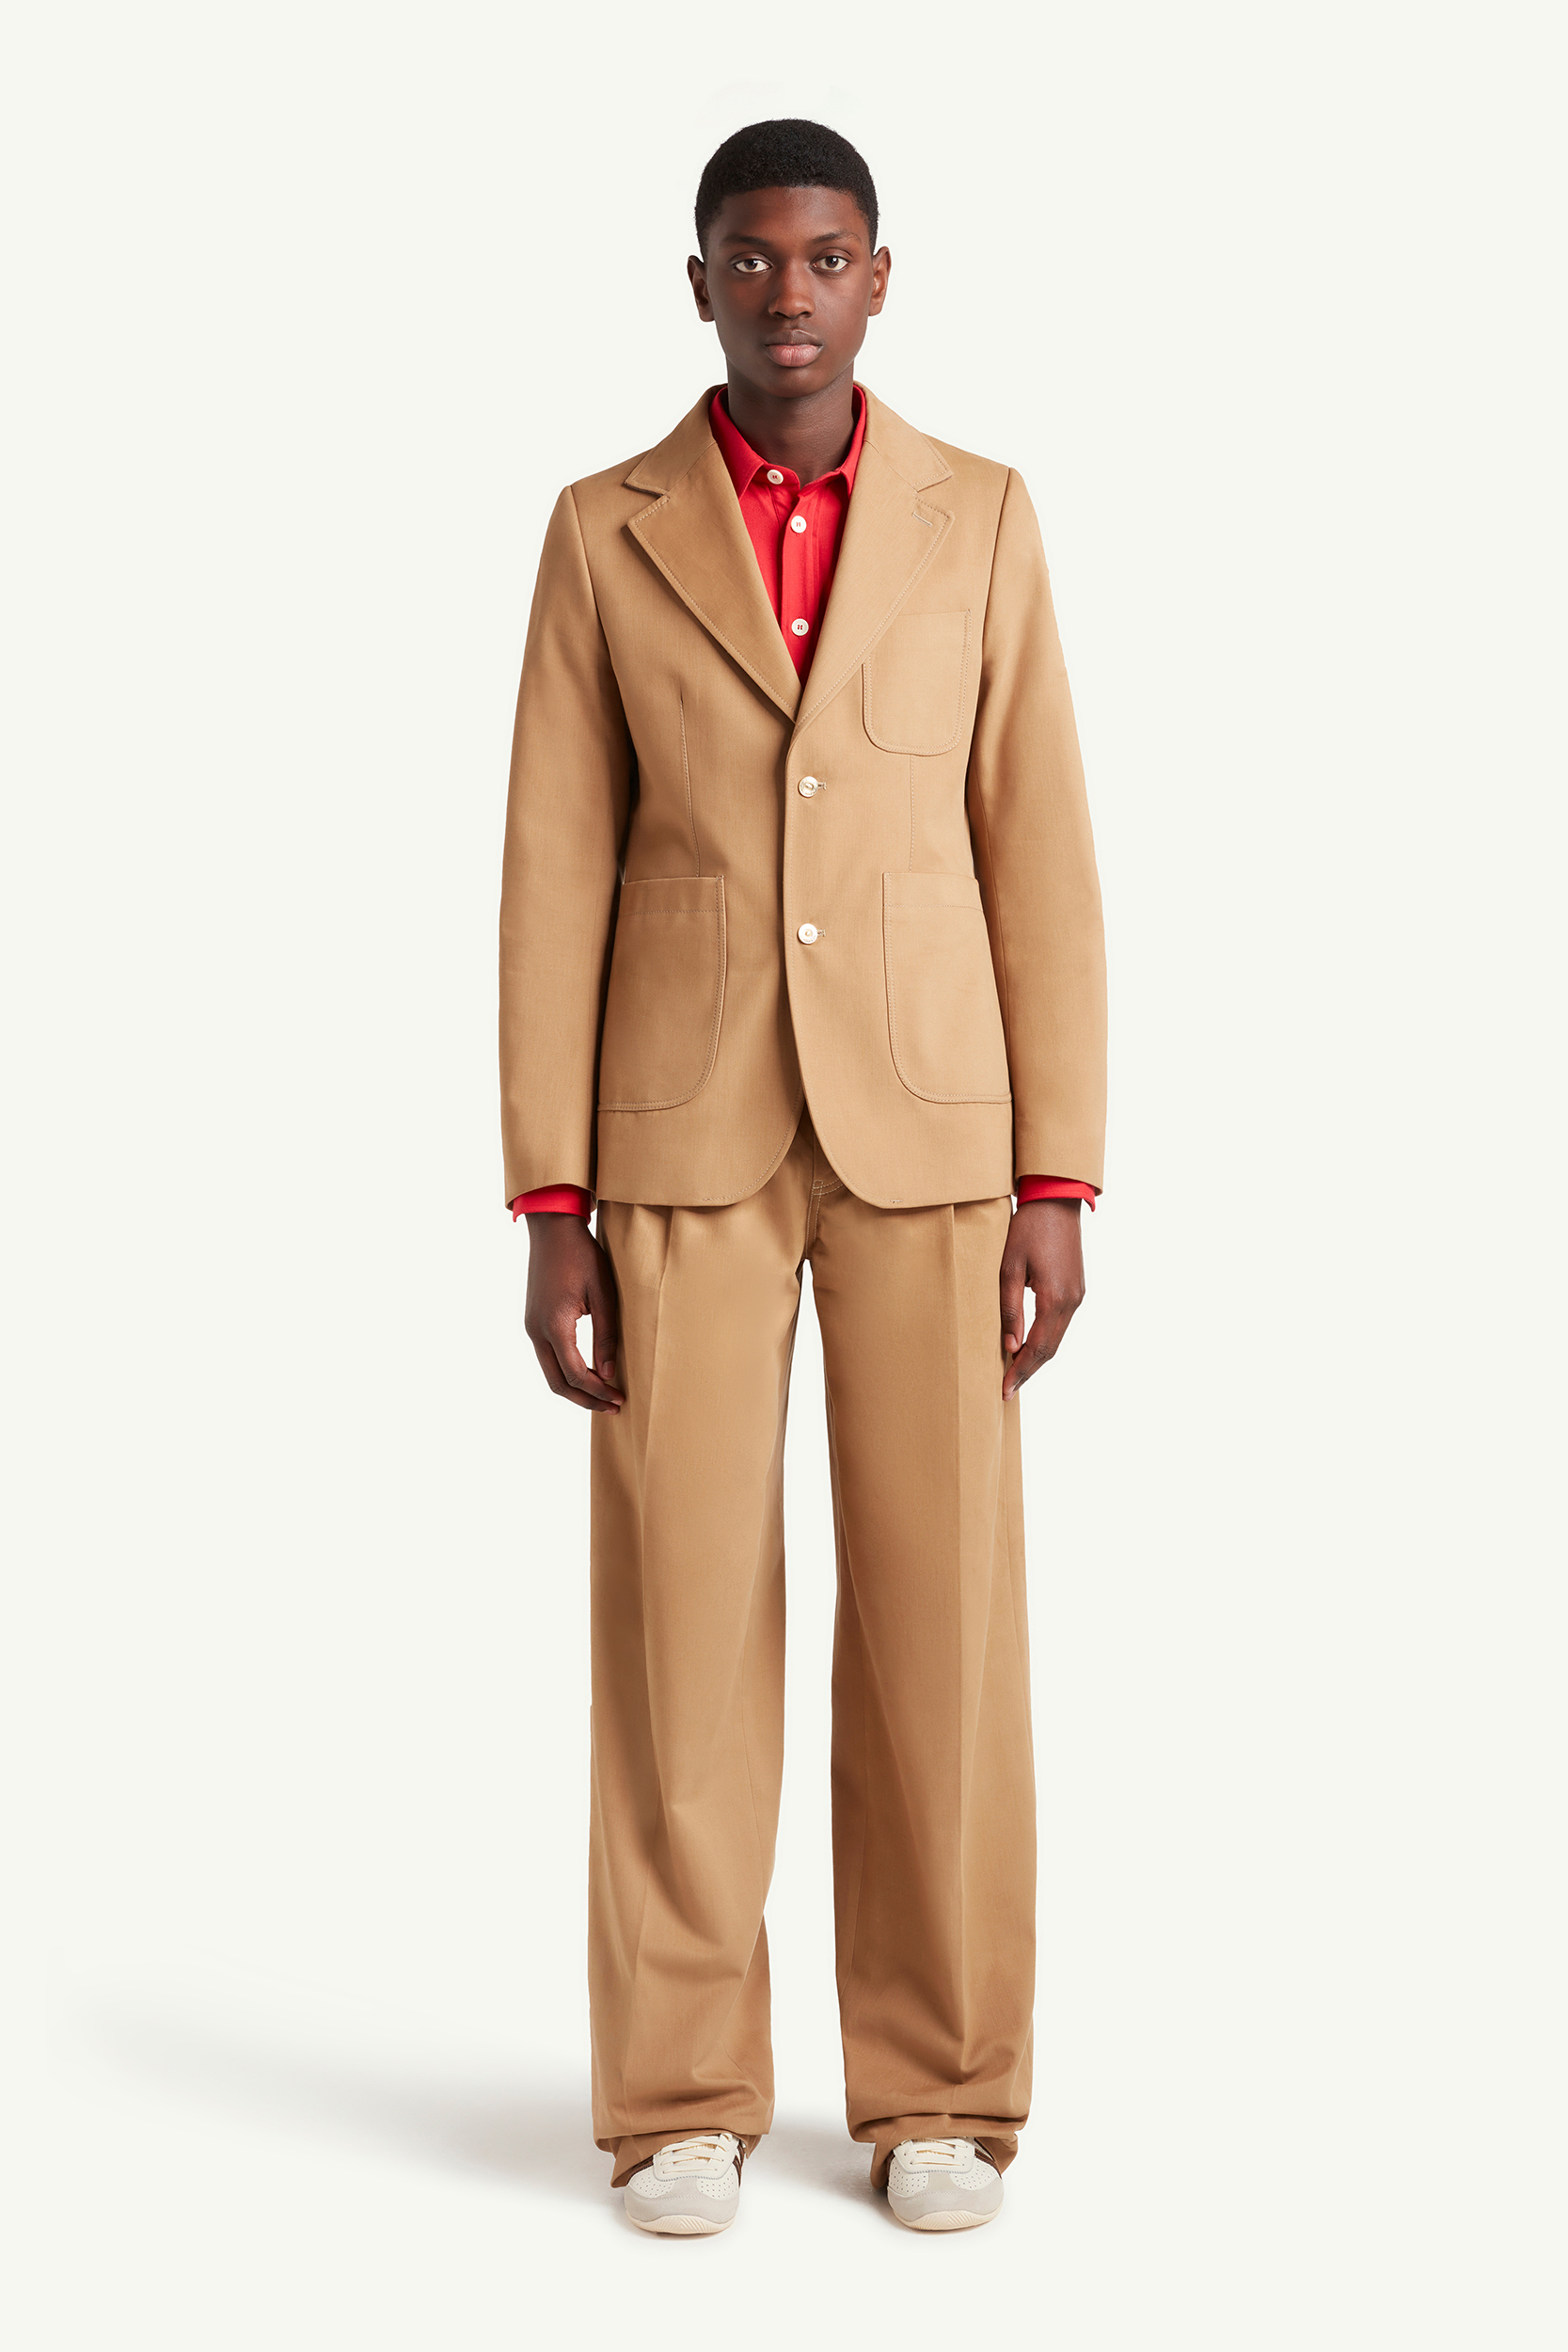 Menswear model wearing sand Wales Bonner suit with red shirt and white trainers | LRP